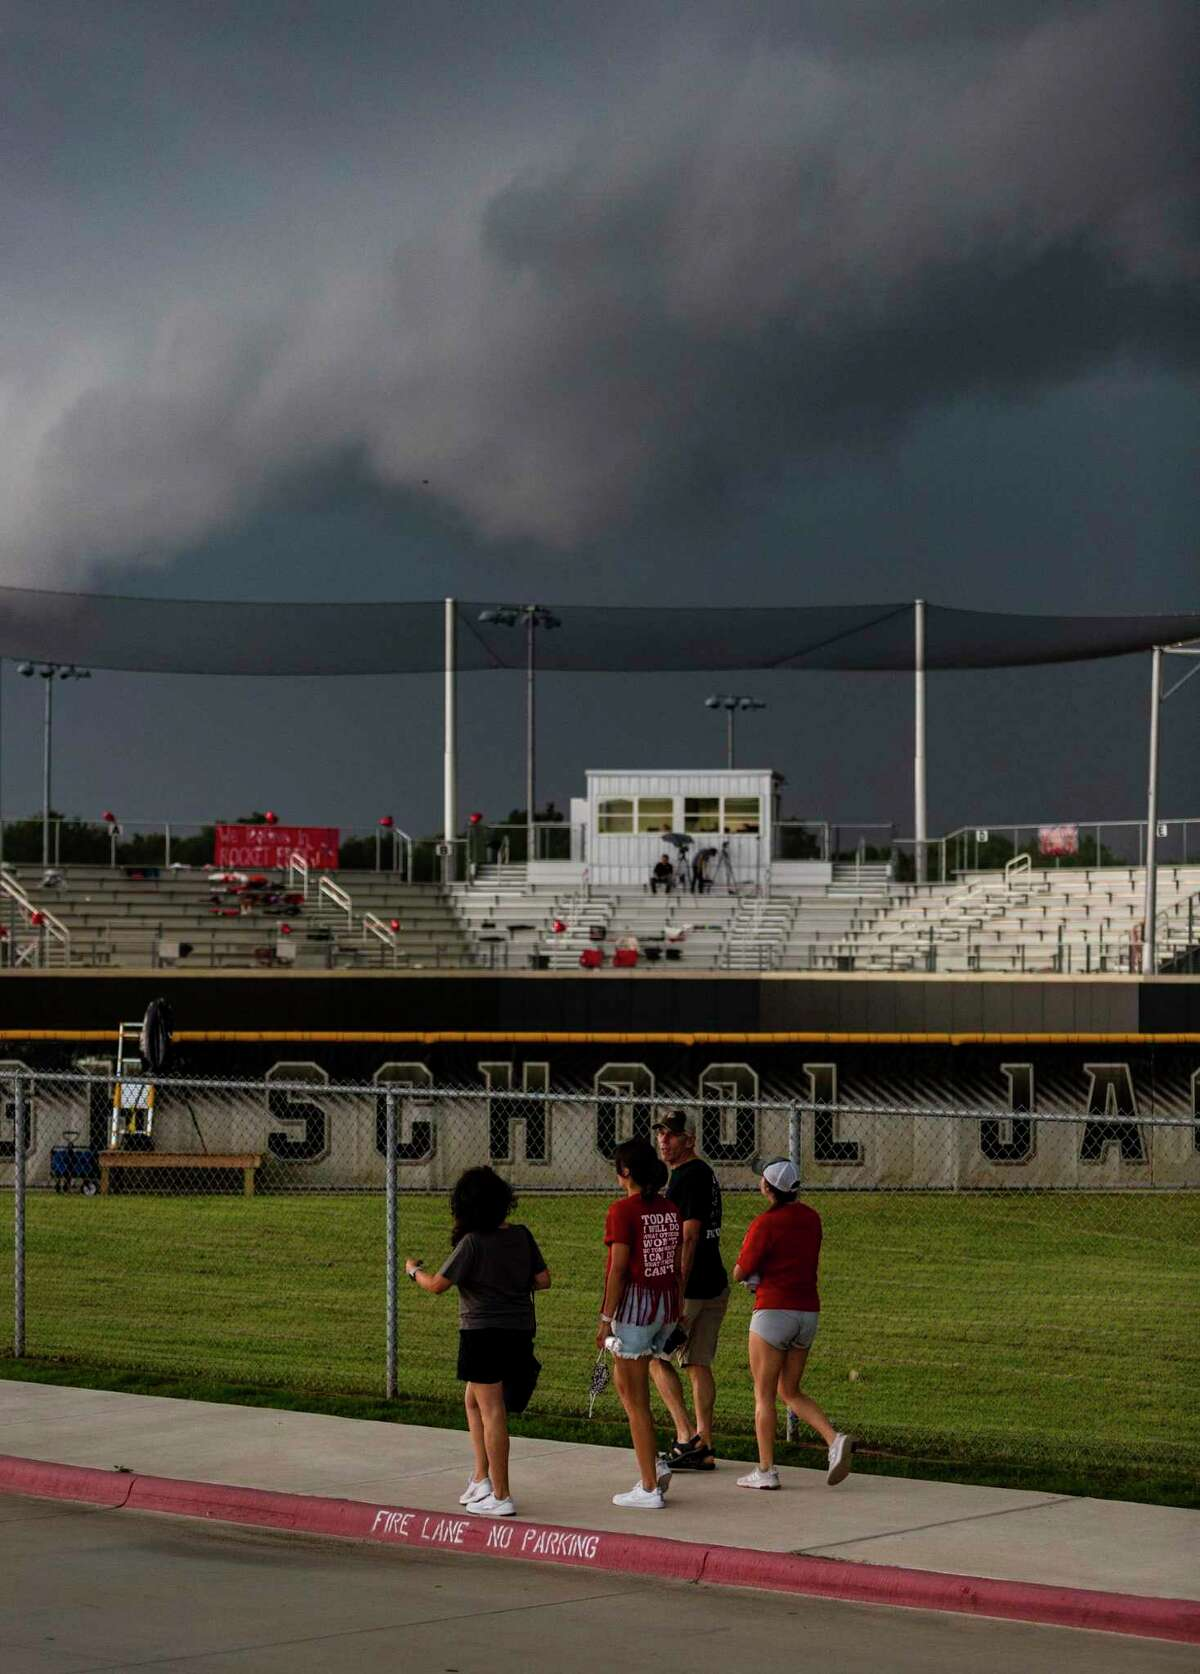 Fans leave the stadium Friday, May 28, 2021 at Johnson High School in Buda as storm clouds and lighting cause a game delay during Judson's Class 6A state quarterfinal softball game against Austin Bowie.